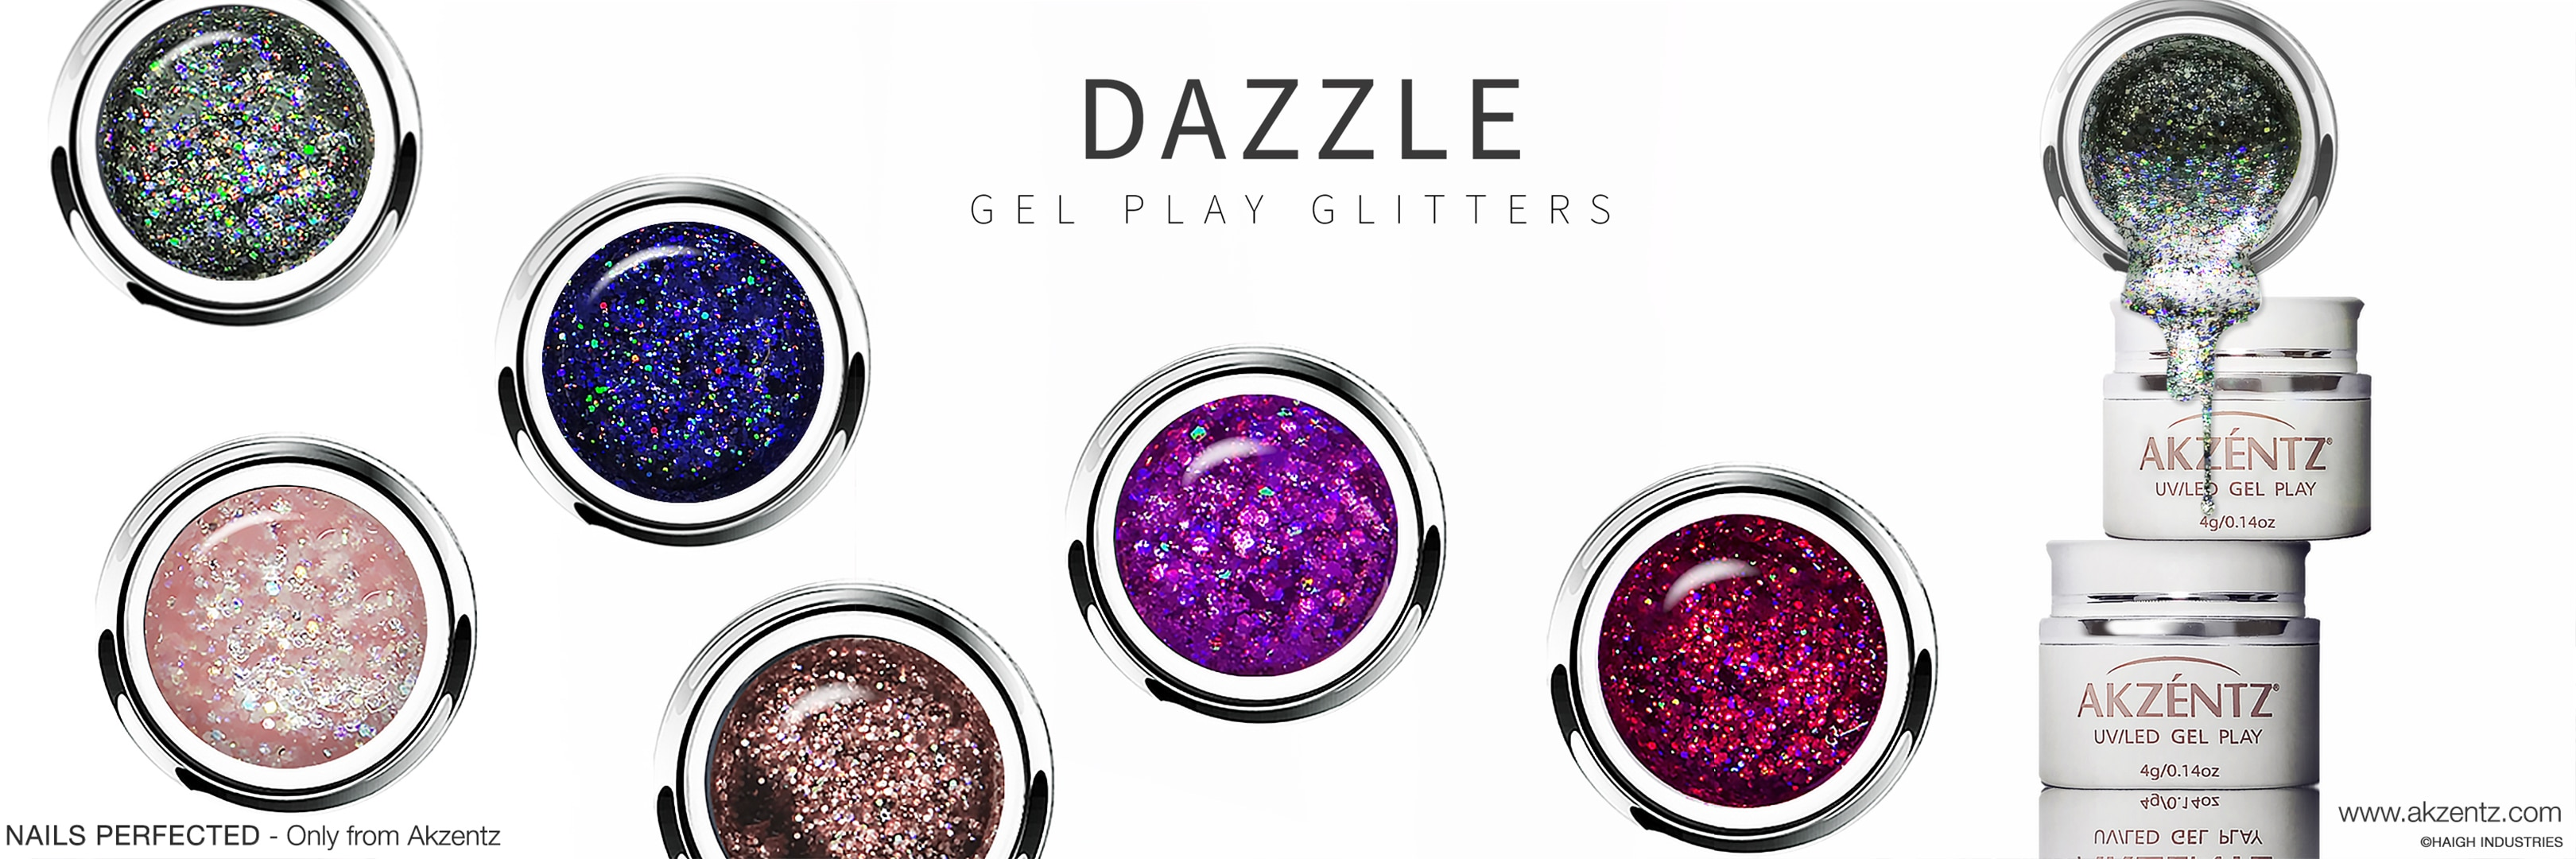 Gel Play Glitter Dazzle UV/LEd